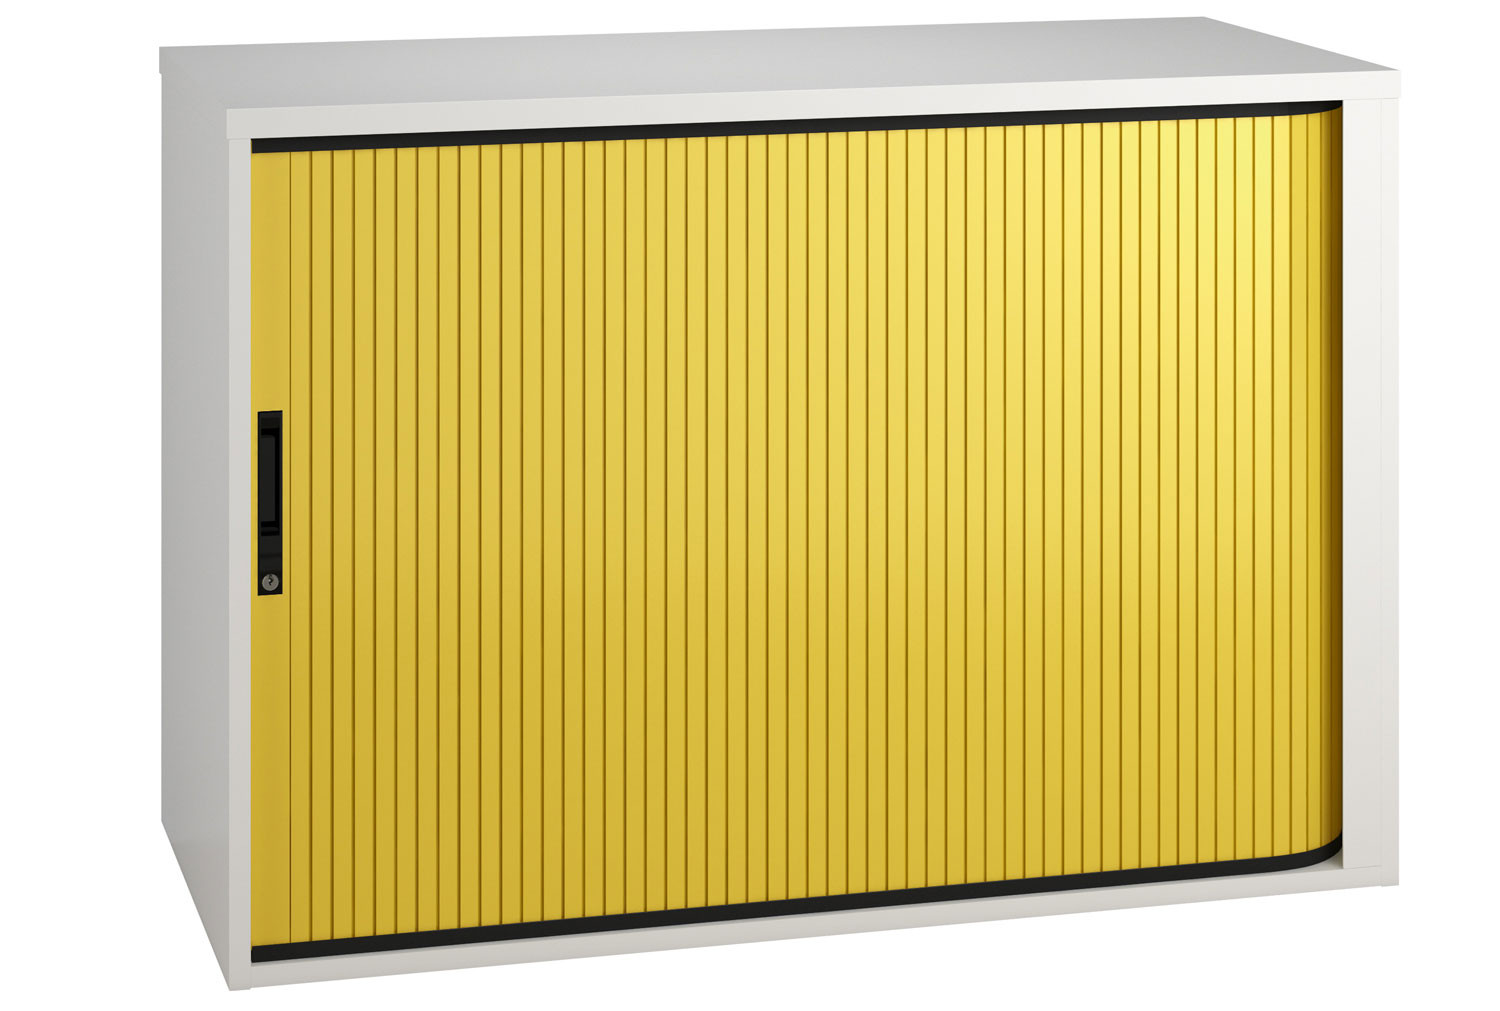 Solero Low Tambour Unit (Yellow)